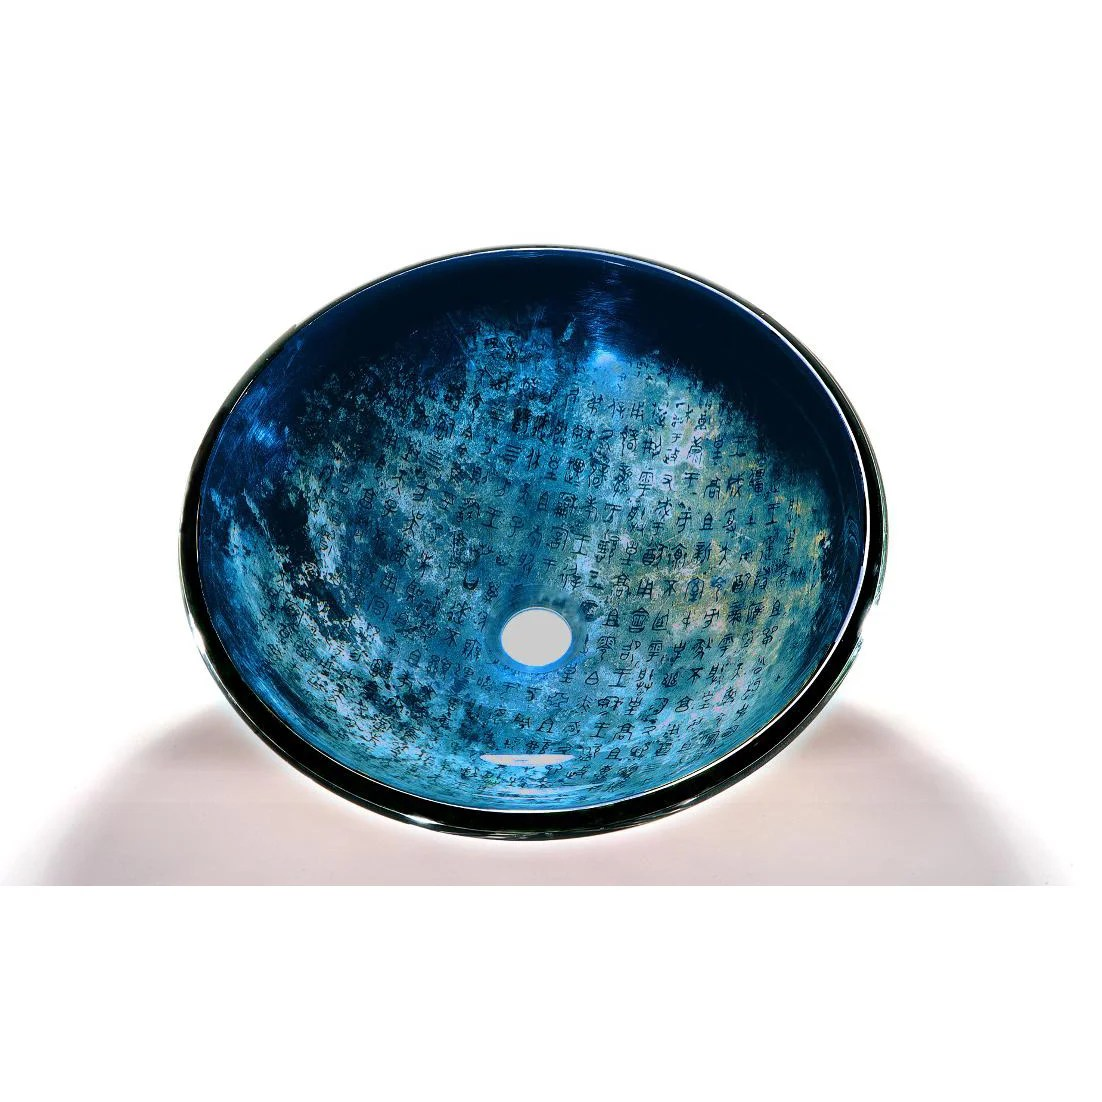 Glass Bathroom Bowls Blue Glass Bowl Vessel Bathroom Sink Overstock Shopping